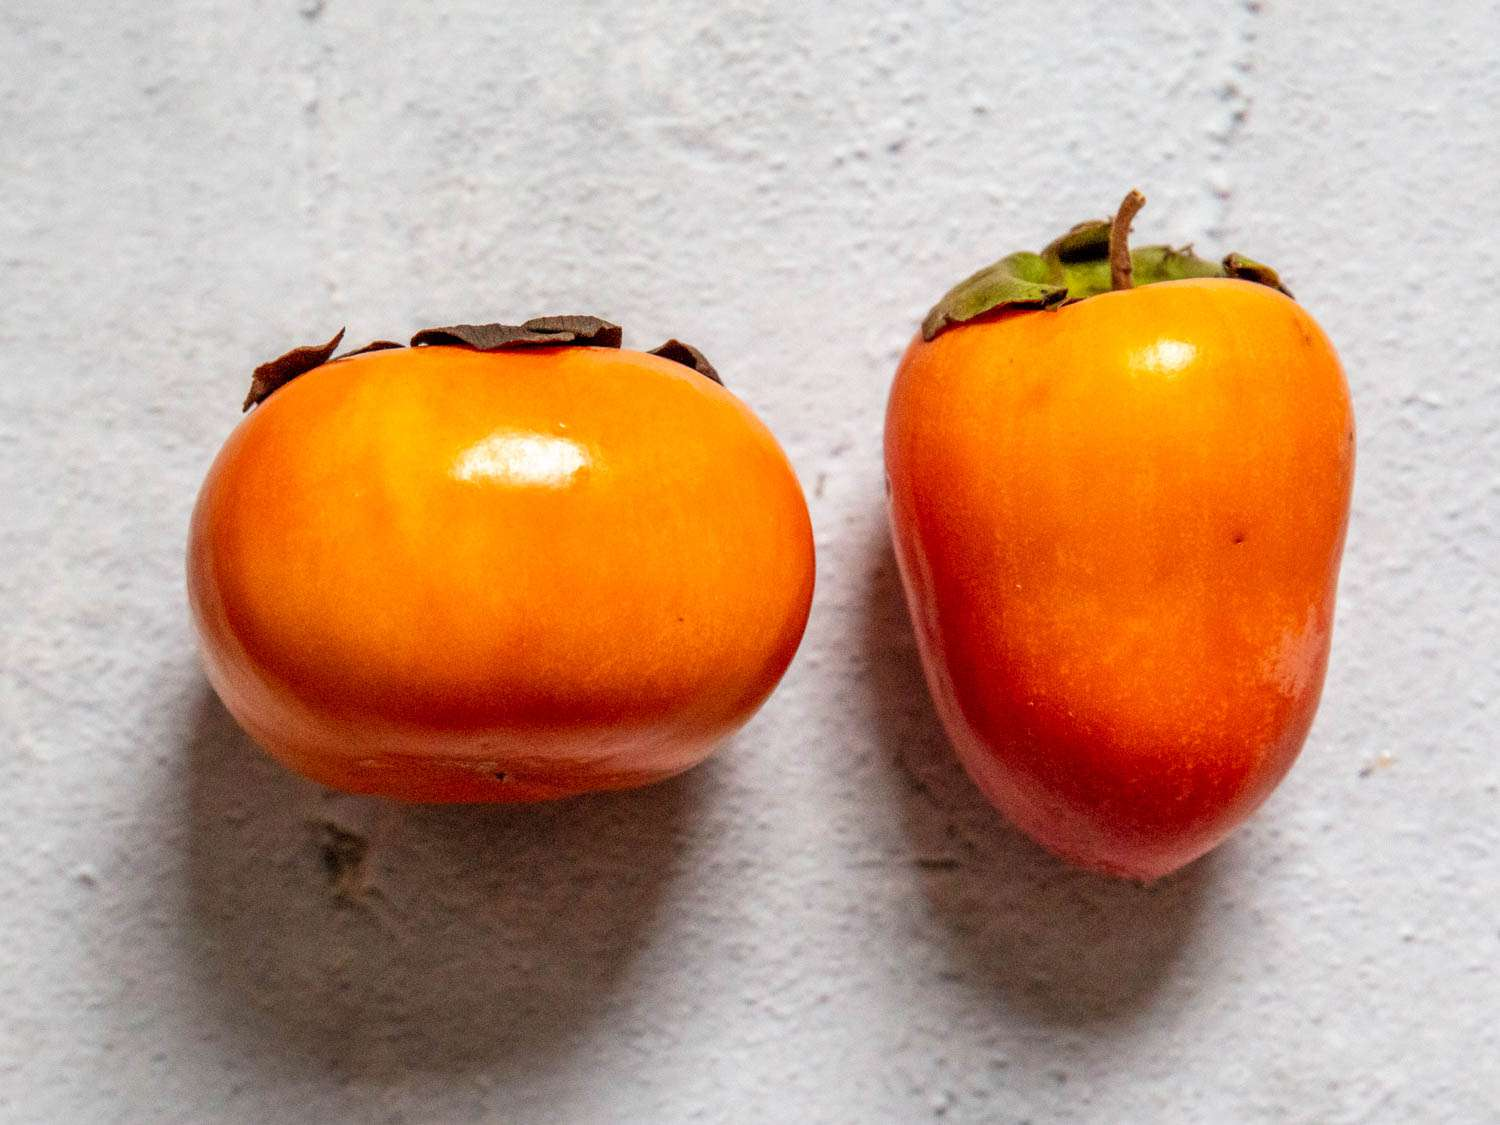 On the left: a fuyu persimmon. On the right, a tsurunoko persimmon.